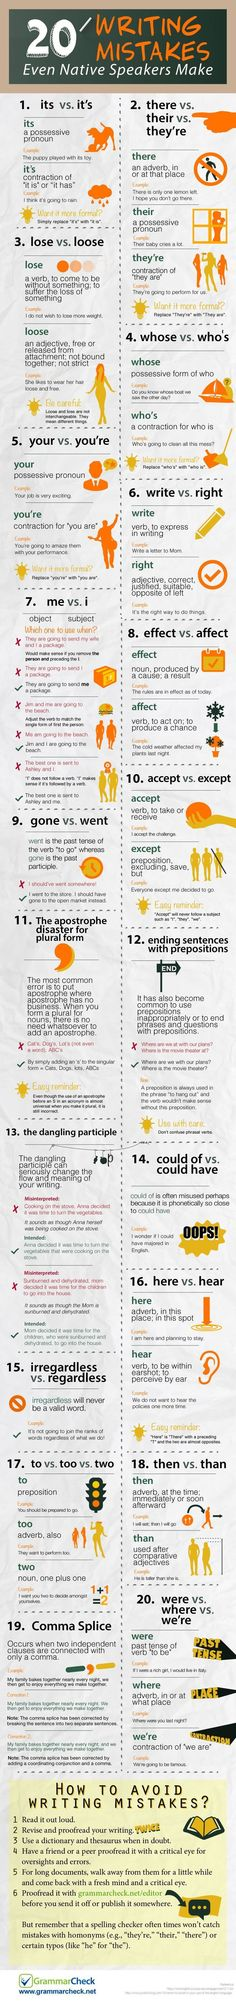 20 Writing Mistakes Even Native Speakers Make (Infographic). Frank Shelltoe Frose Leach